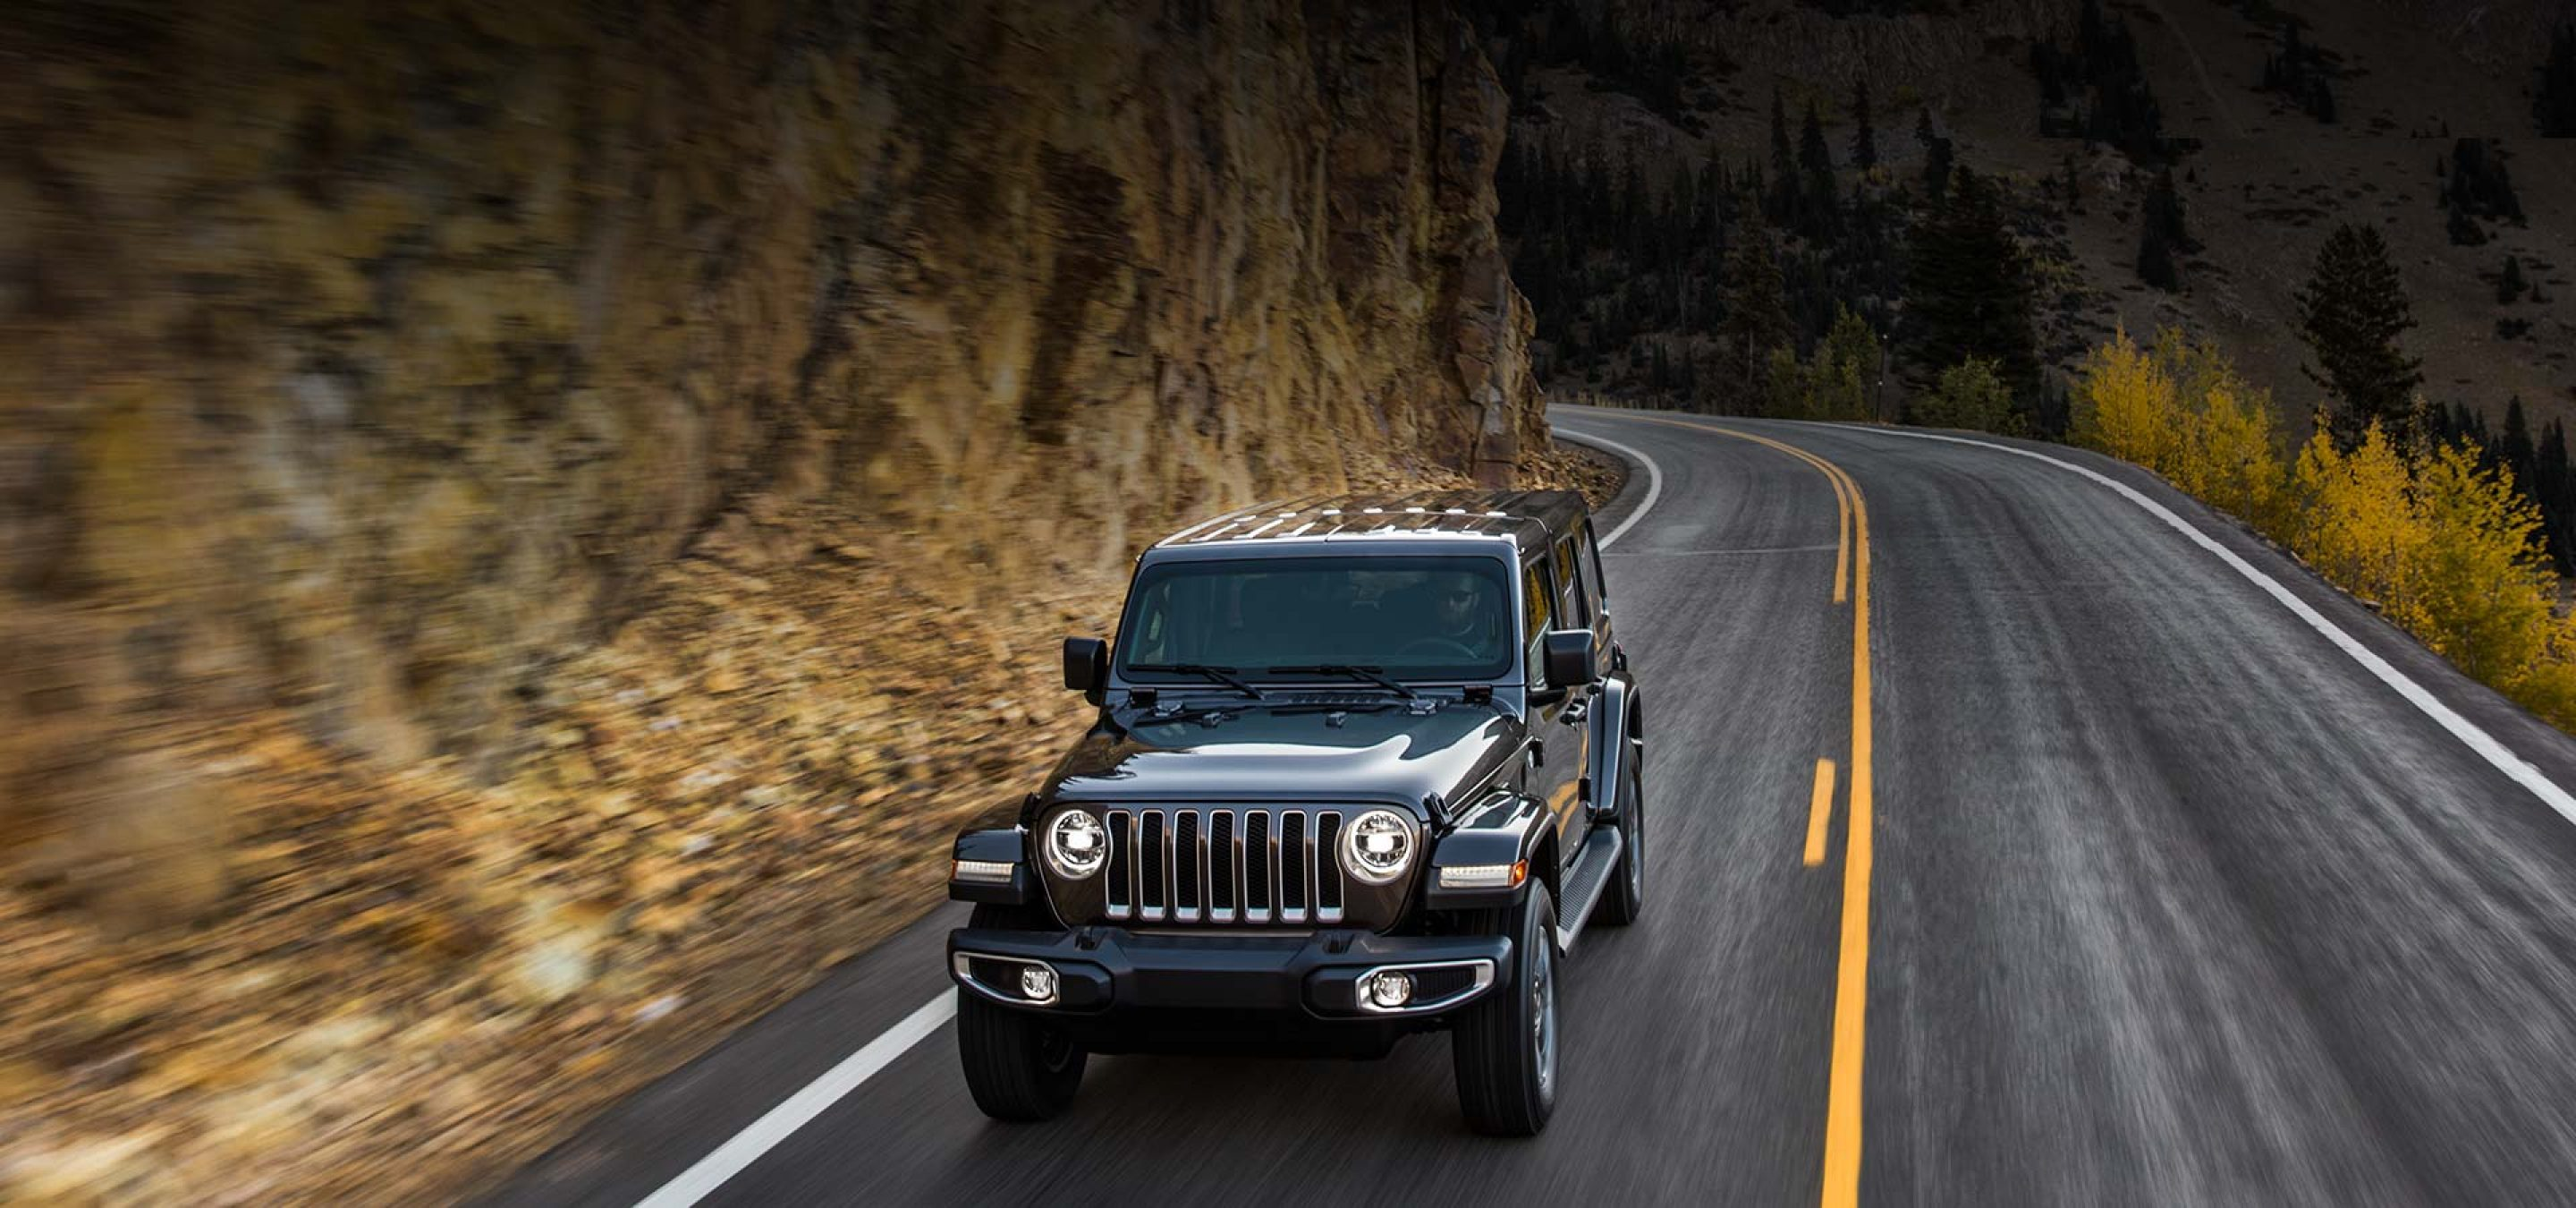 2019 JEEP WRANGLER SAFETY AND SECURITY